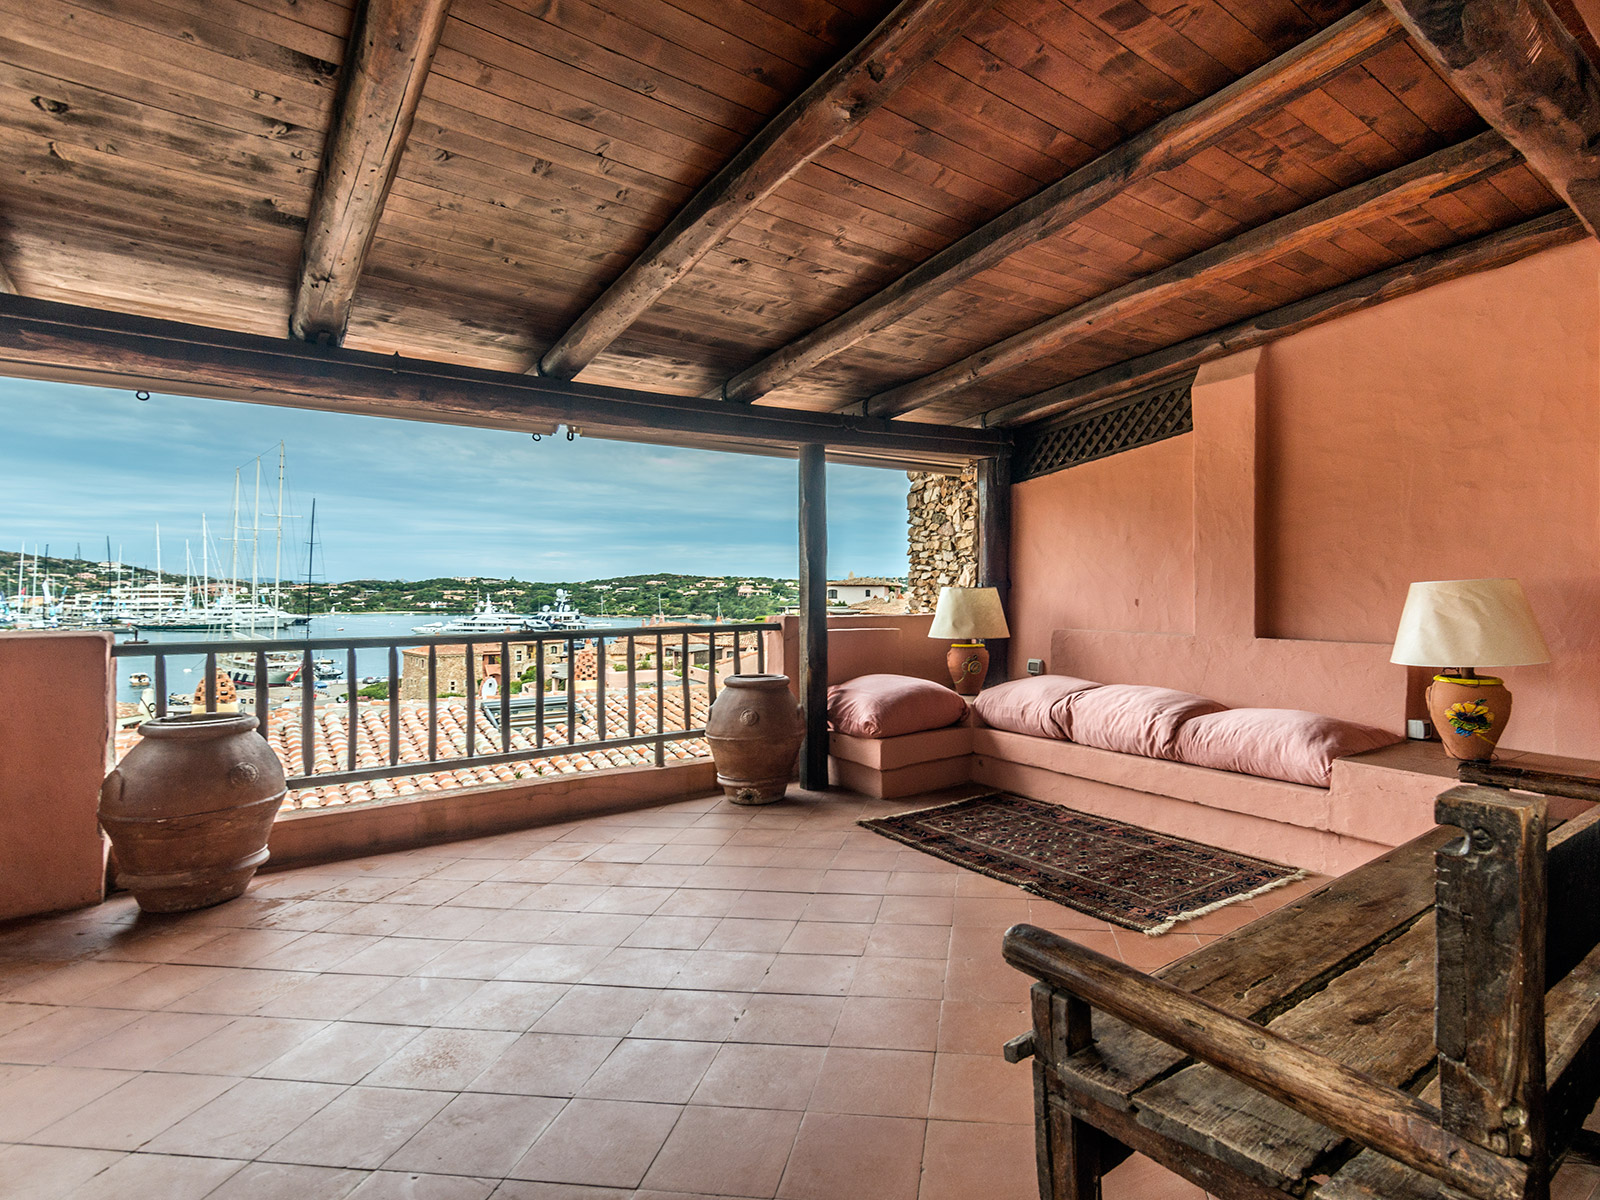 Single Family Home for Sale at Harbor front residence in gated community Porto Cervo Porto Cervo, Olbia Tempio 07020 Italy